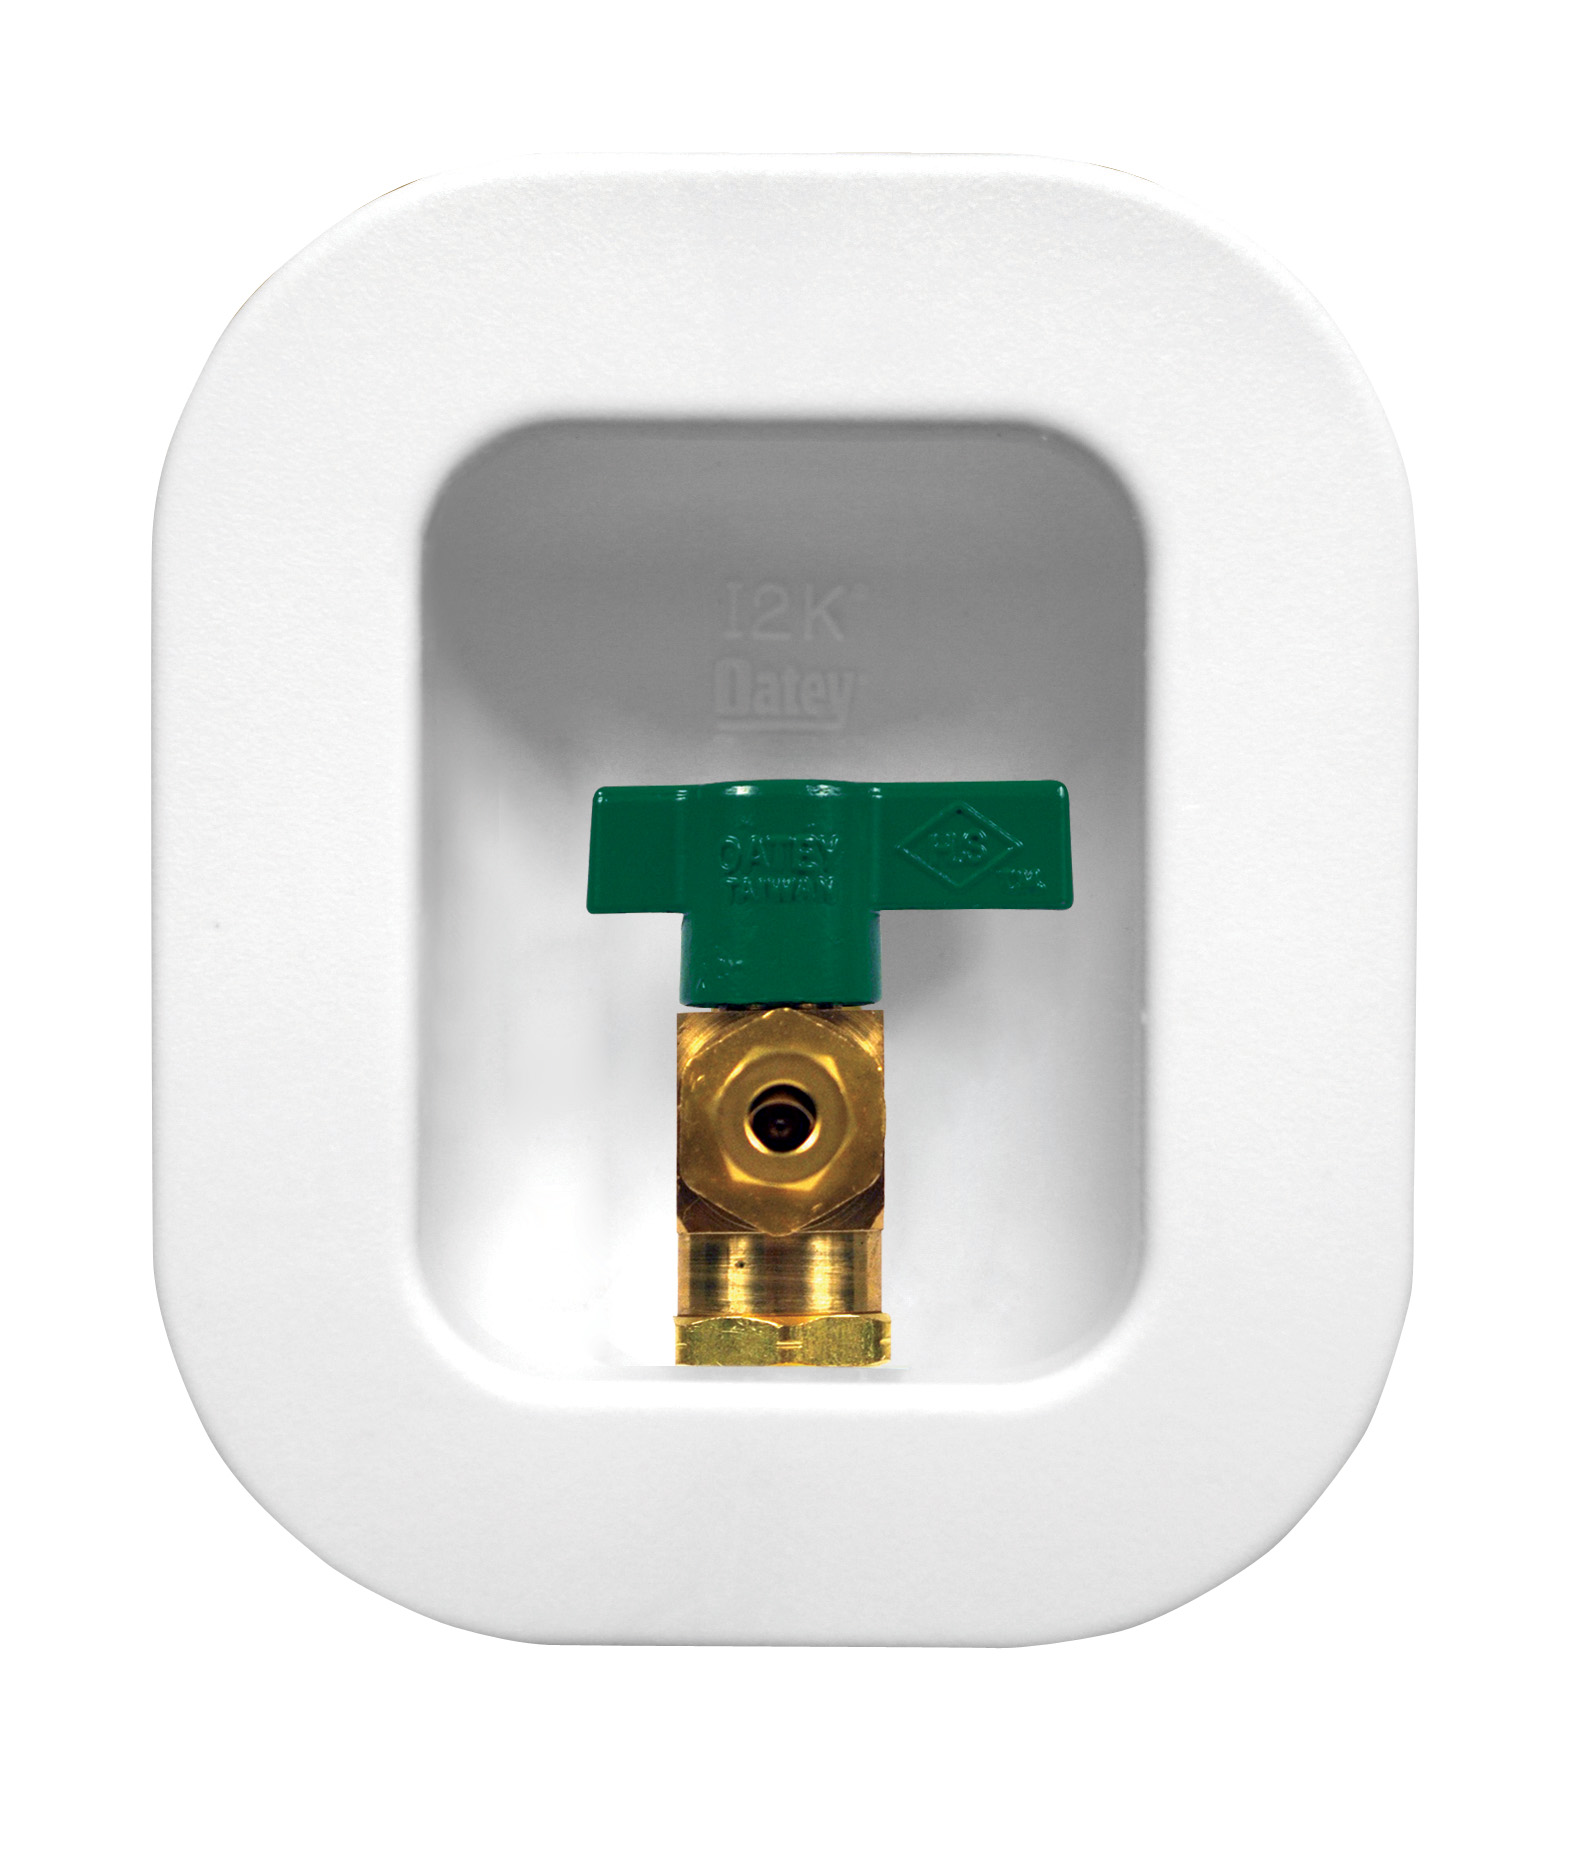 Llaves Empotrables also 552701 Need Flexible Connector Between Hose Bib Pvc likewise 1458 as well 653764 likewise Universal Faucet Lever Handles In Oil Rubbed Bronze. on faucet supply connector